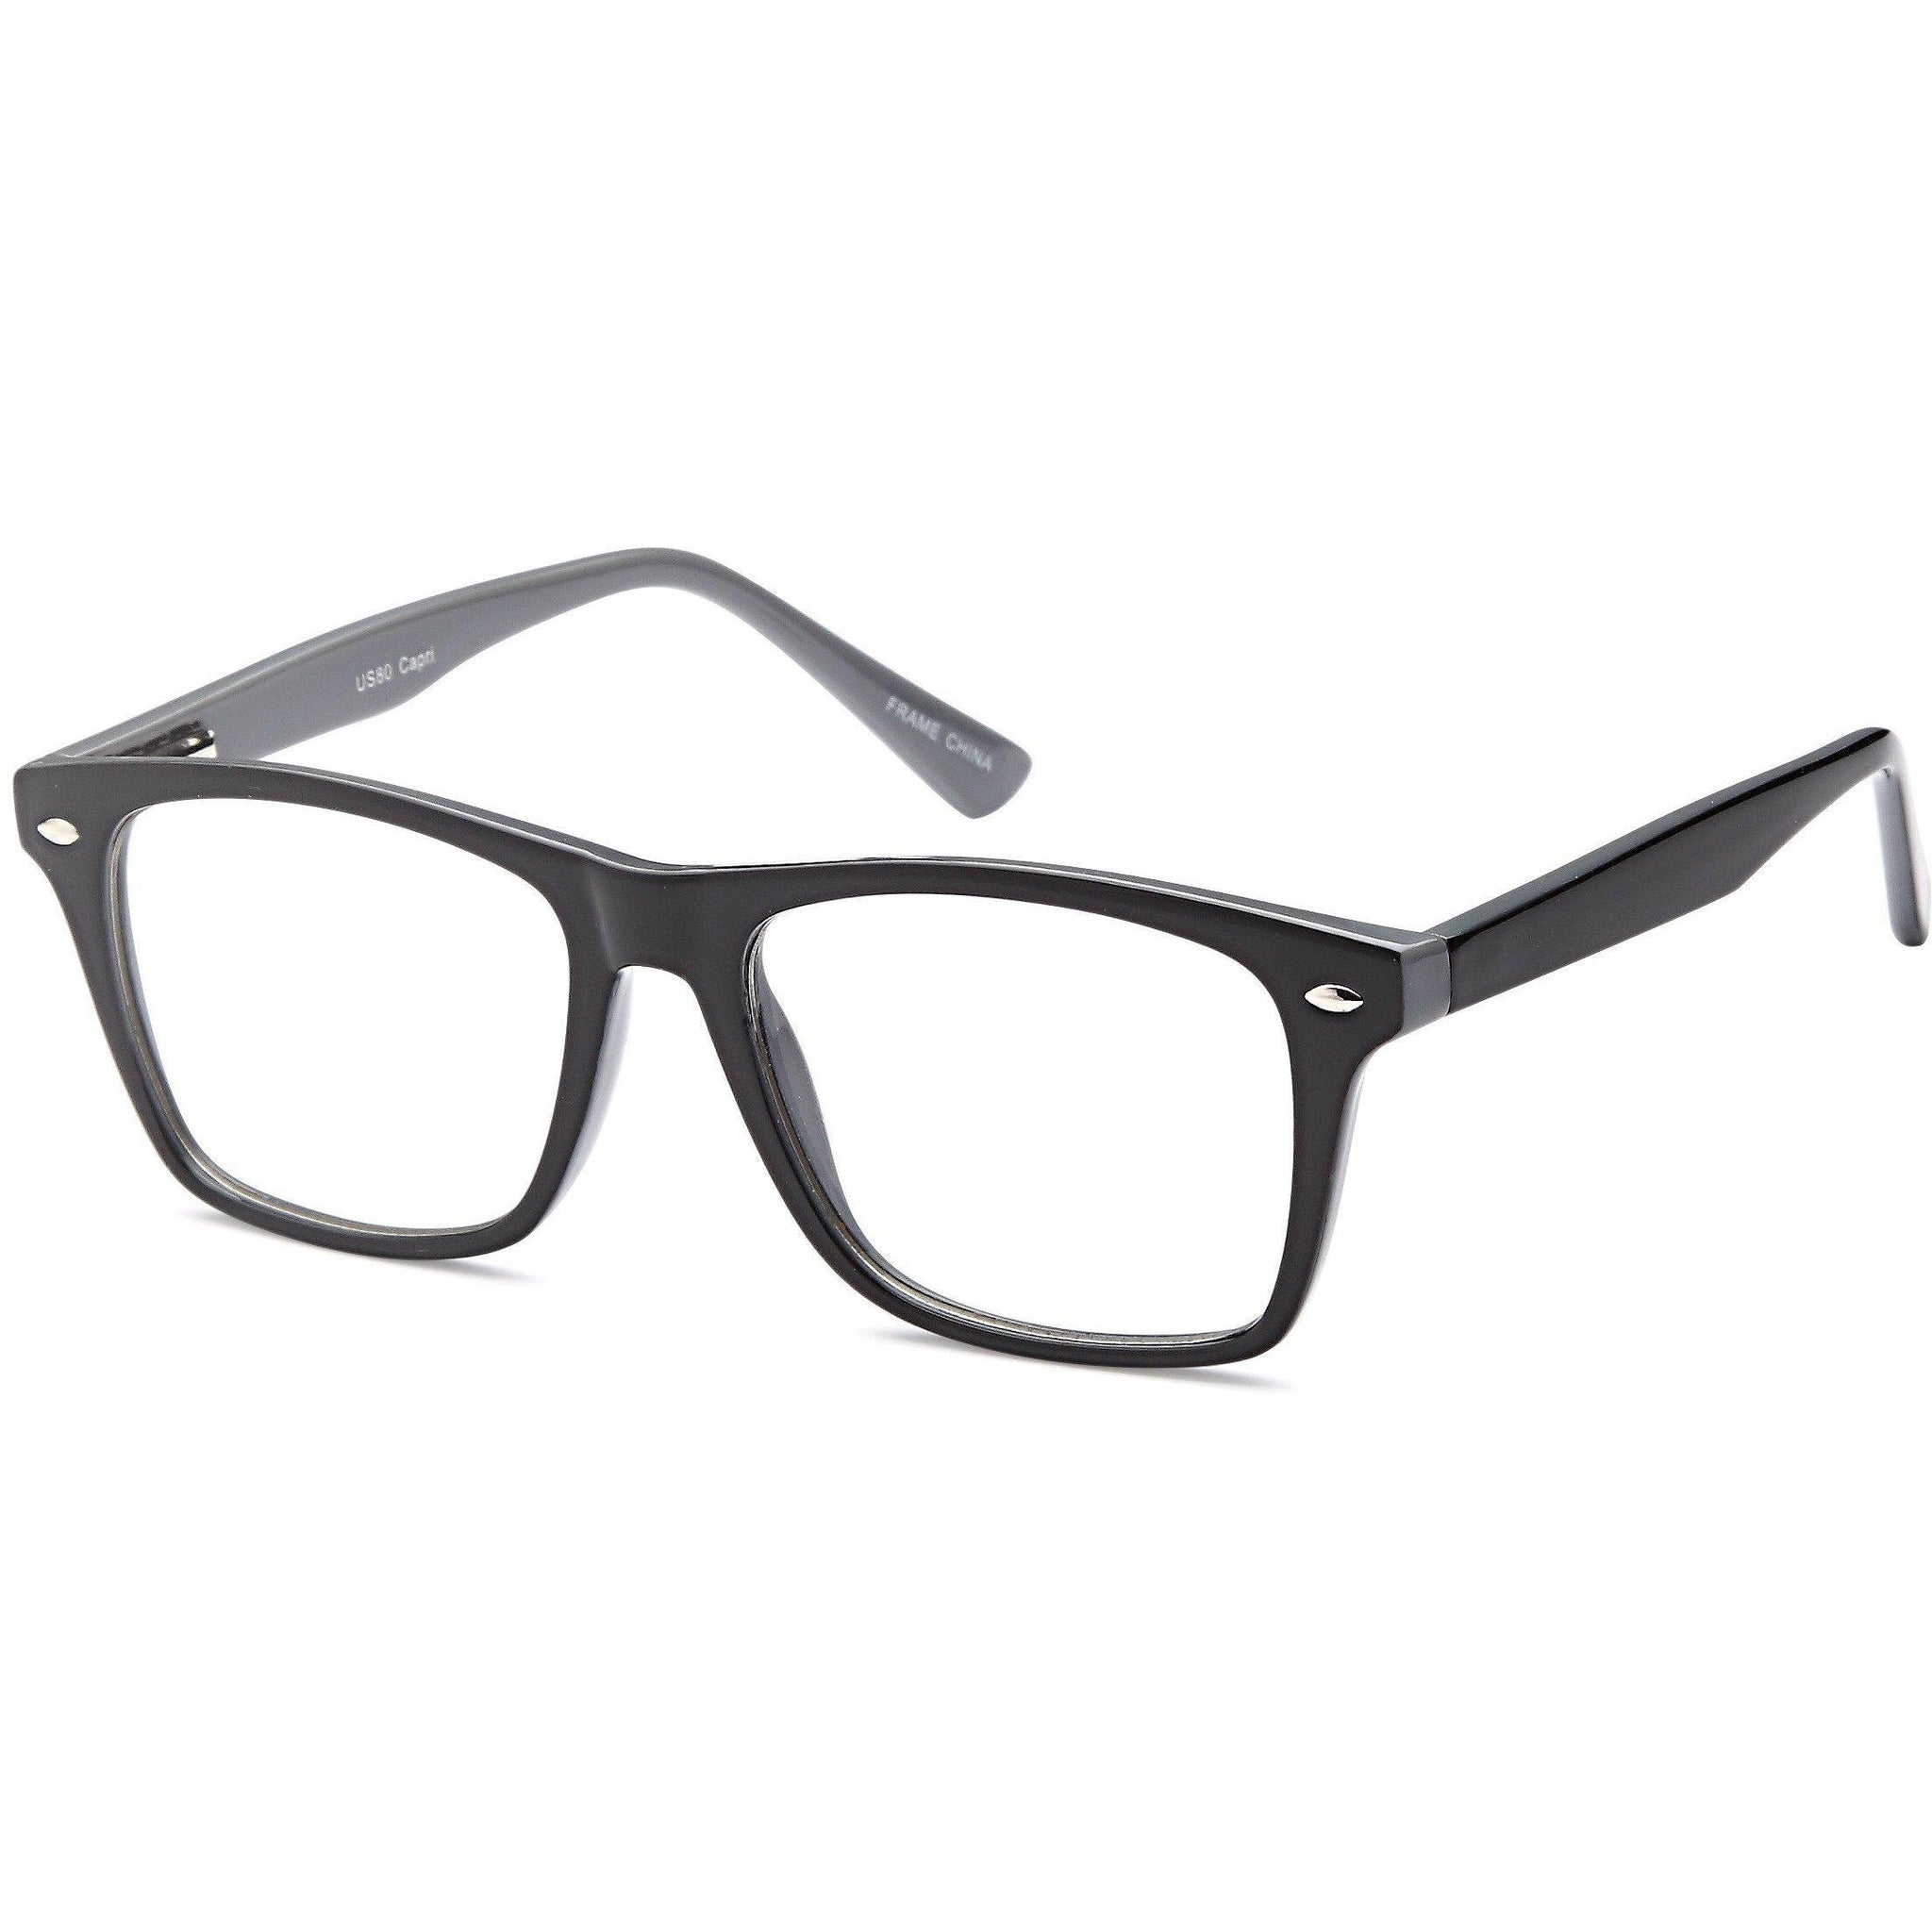 4U Prescription Glasses US 80 Optical Eyeglasses Frame - timetoshade